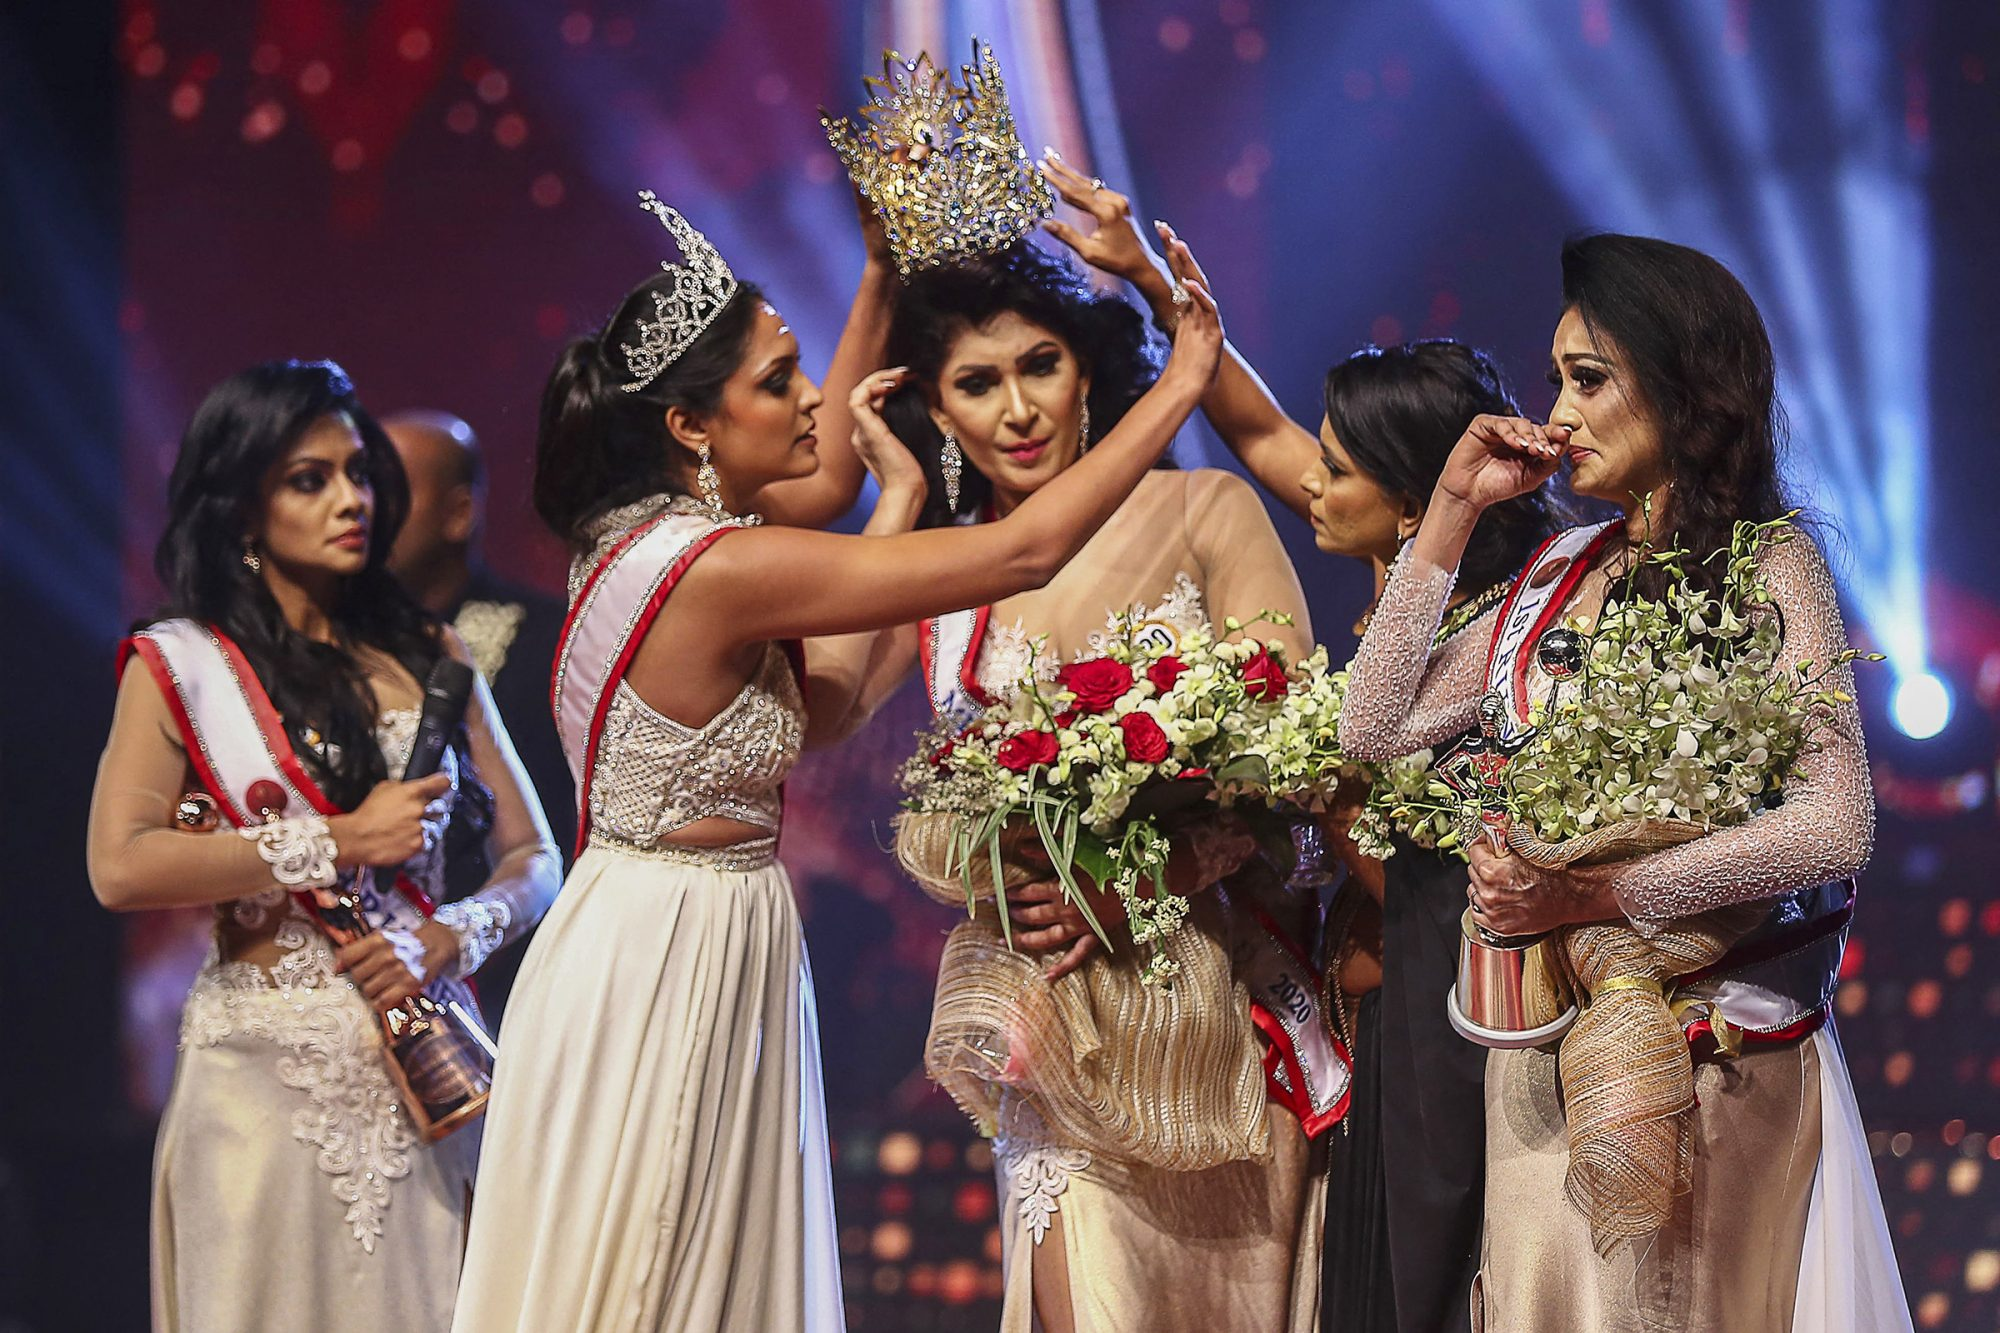 In this photograph taken on April 4, 2021, winner of Mrs. Sri Lanka 2020 Caroline Jurie (2-L) removes the crown of 2021 winner Pushpika de Silva (C) as she is disqualified by the jurie over the accusation of being divorced, at a beauty pageant for married women in Colombo